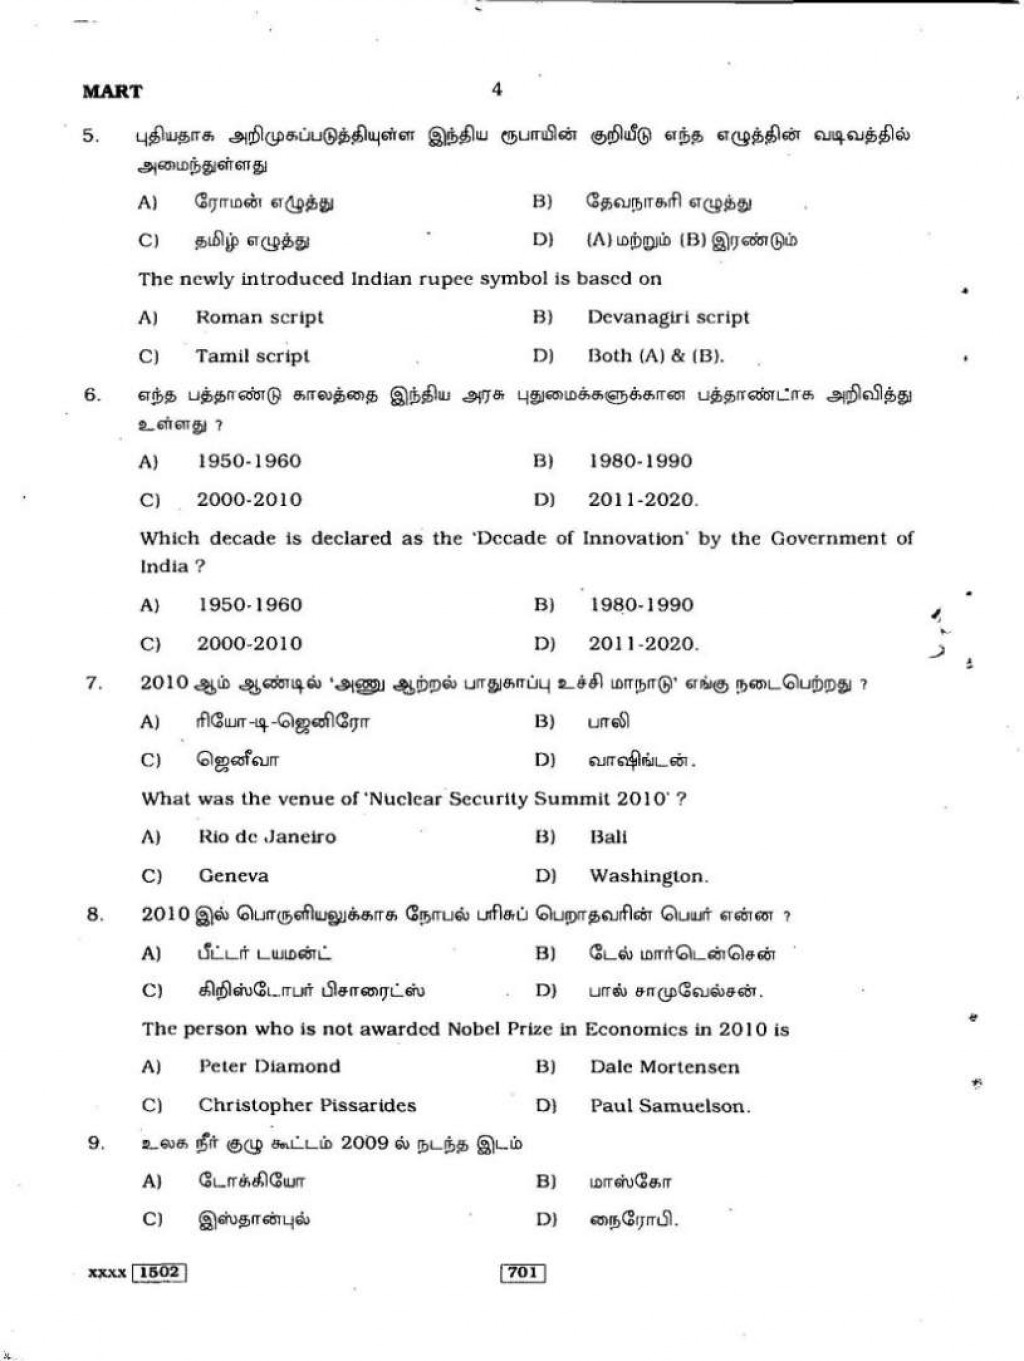 011 Previous Year Tnpsc Group Ii Question Papers With Answers In Pdf Format Essay Example Answering Unforgettable Questions Apa Multiple Large